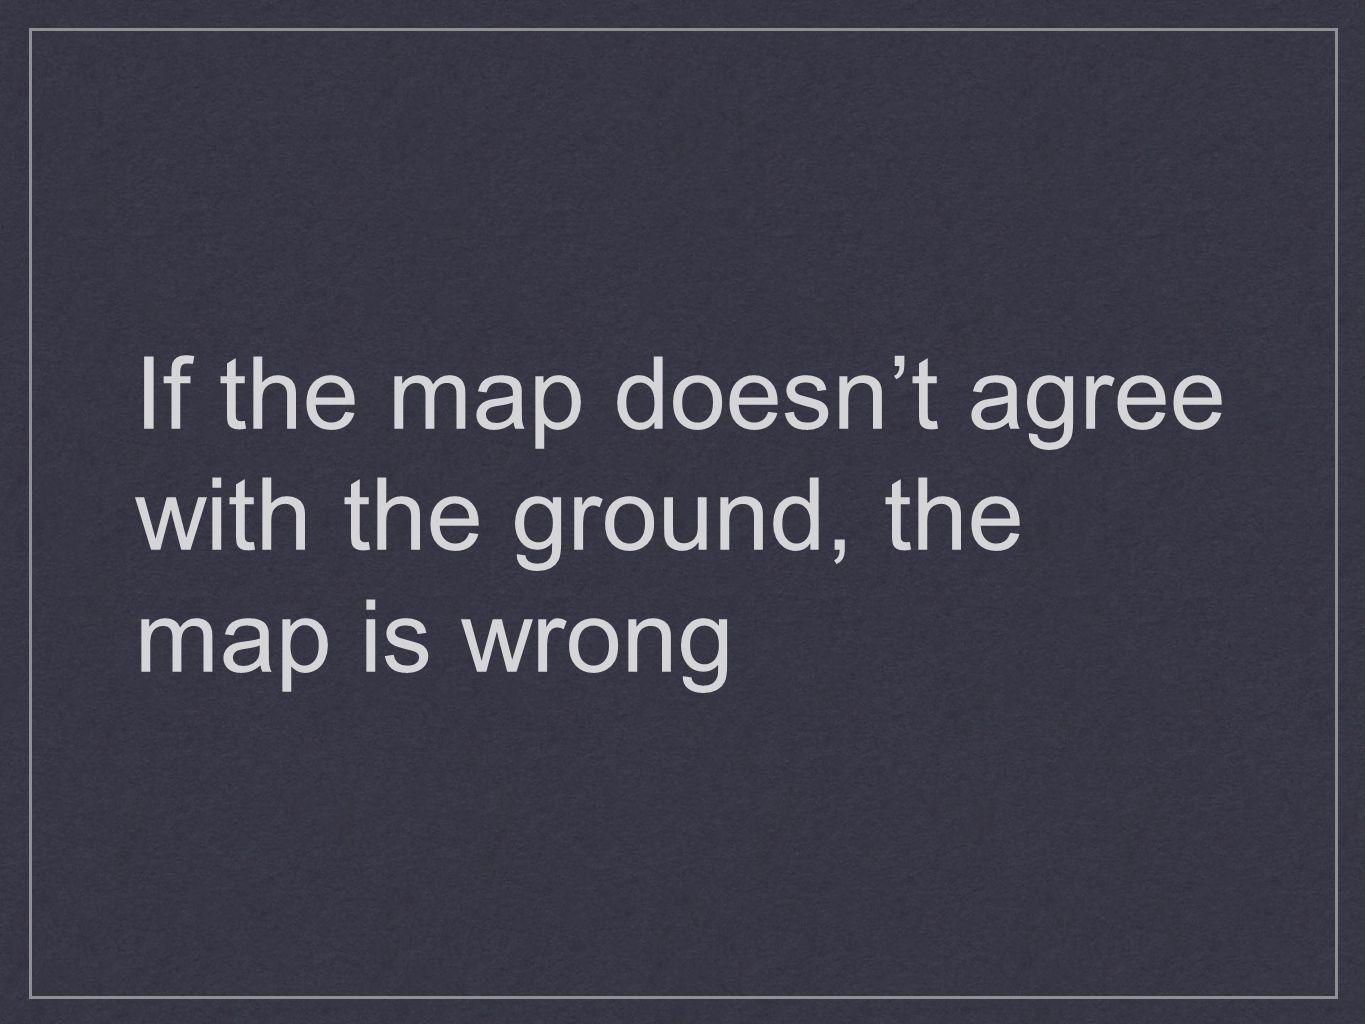 If the map doesn't agree with the ground, the map is wrong